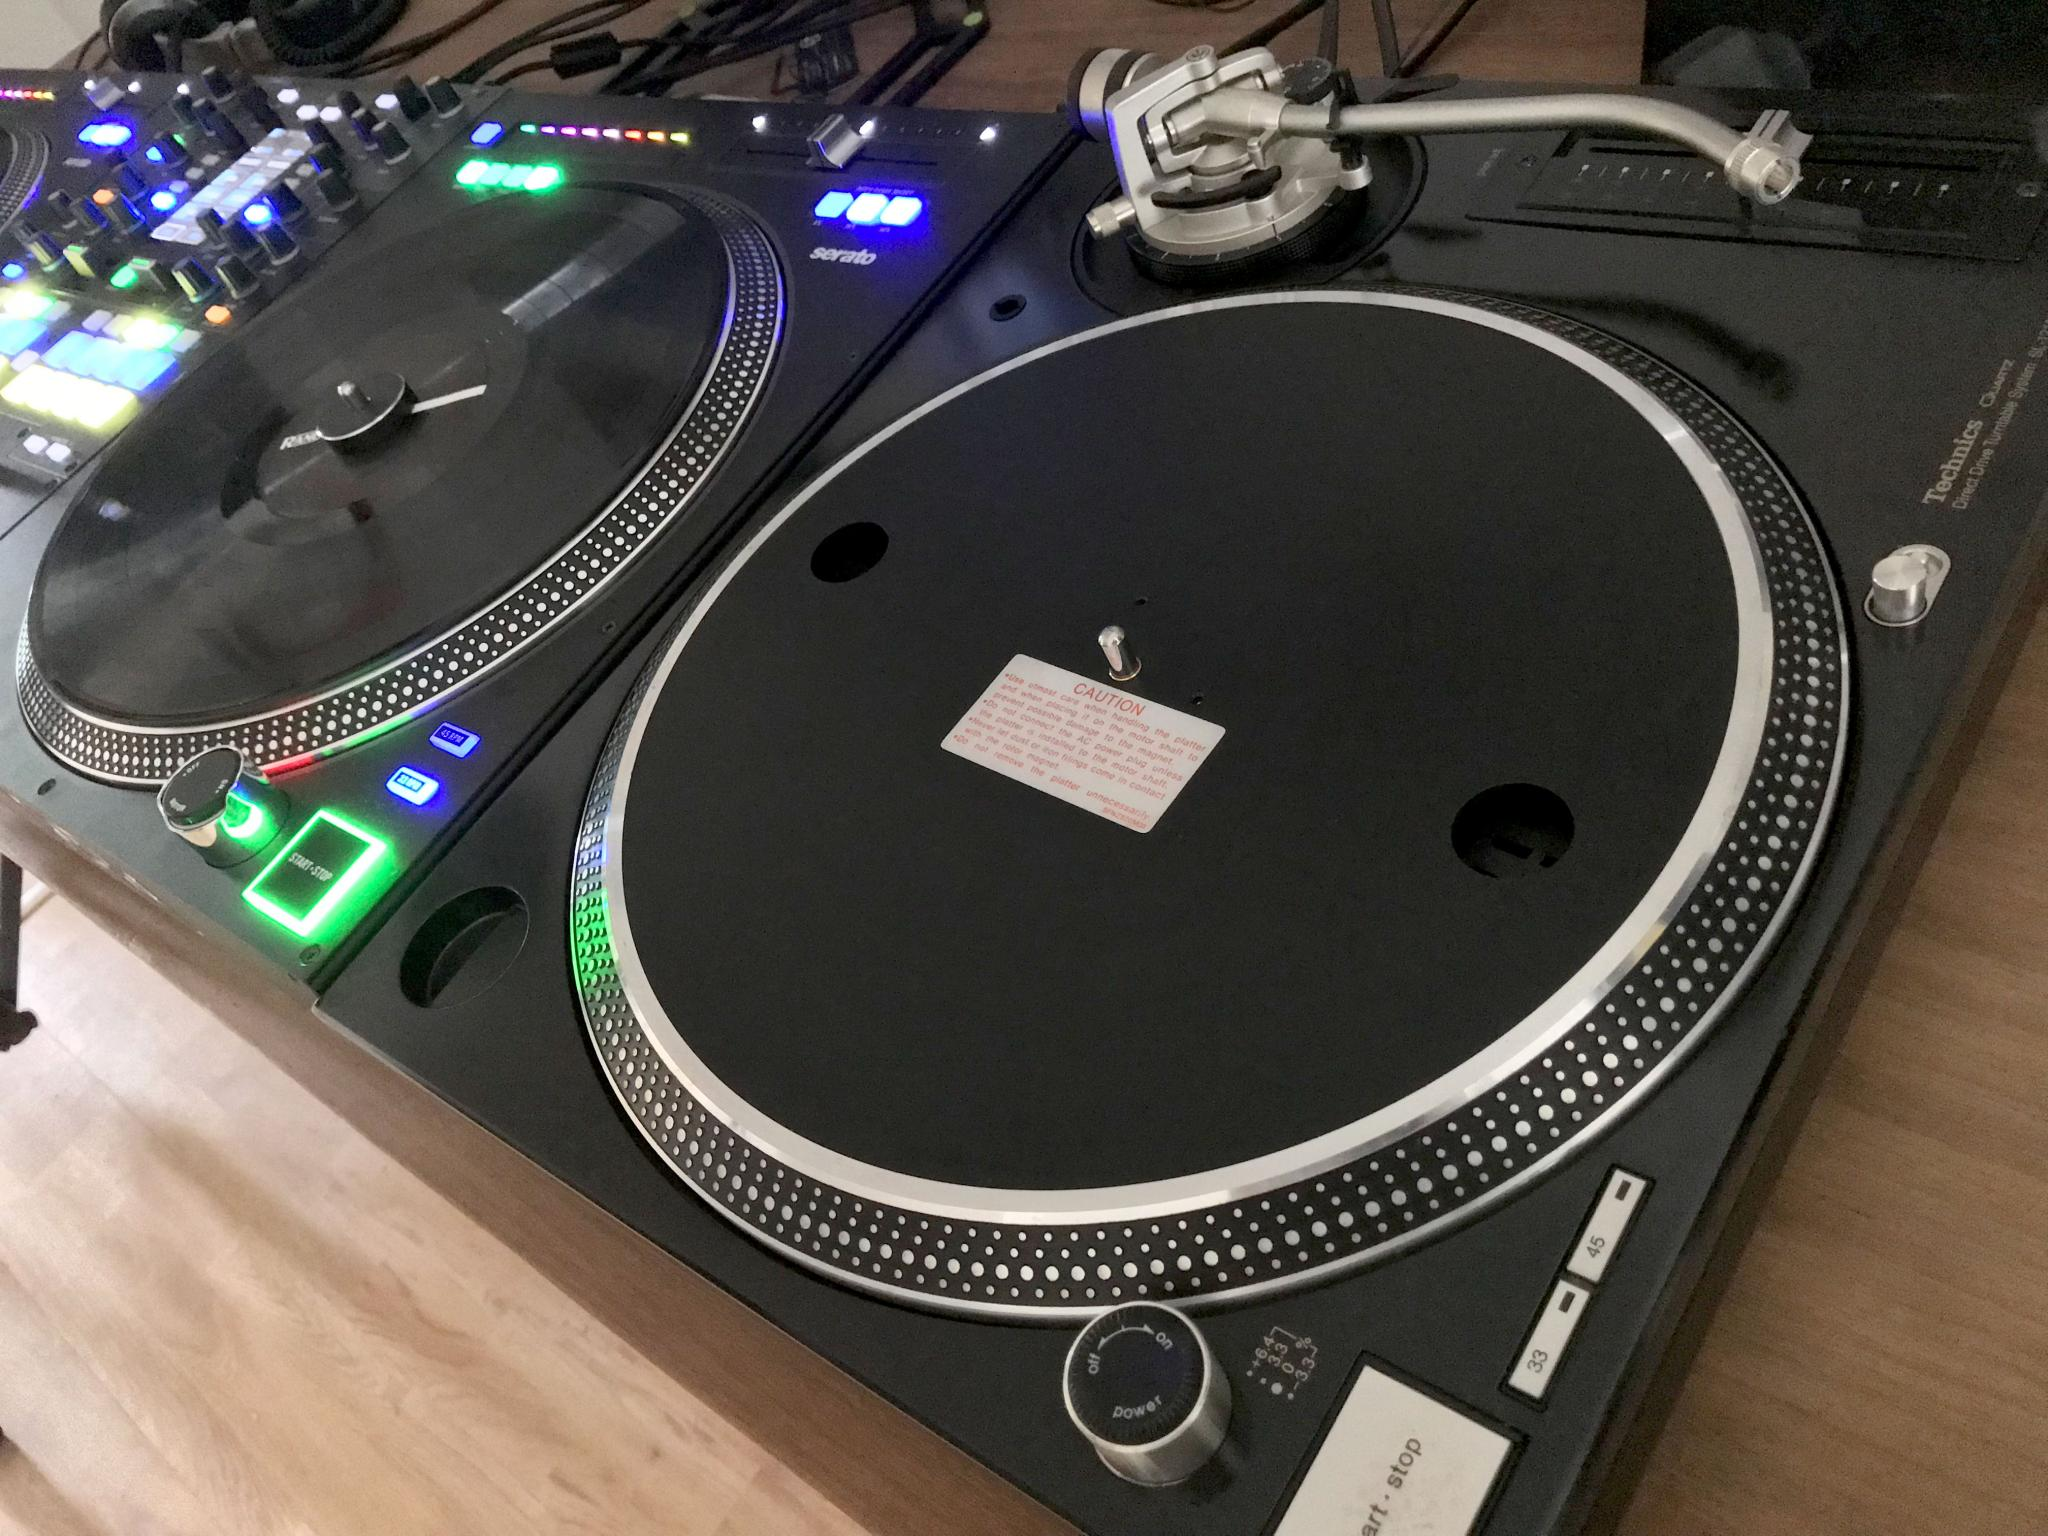 OPINION: The dumbing down of DJ turntables has to stop 3